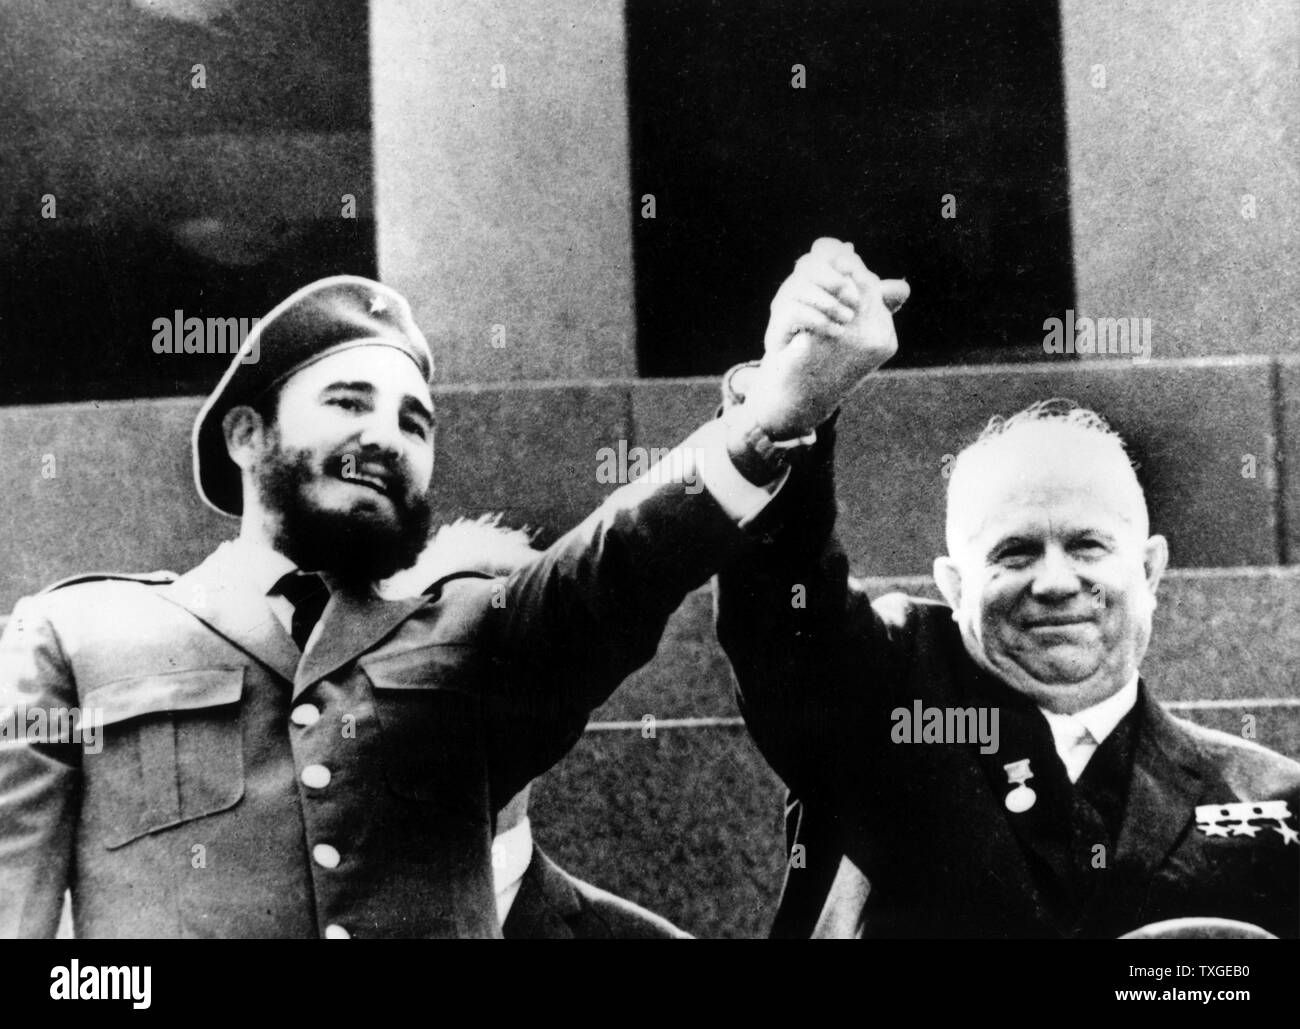 Photograph of Fidel Castro (1926-) and Nikita Khrushchev (1894-1971) in front of the tomb of Vladimir Lenin (1970-1924). Dated 1963 - Stock Image